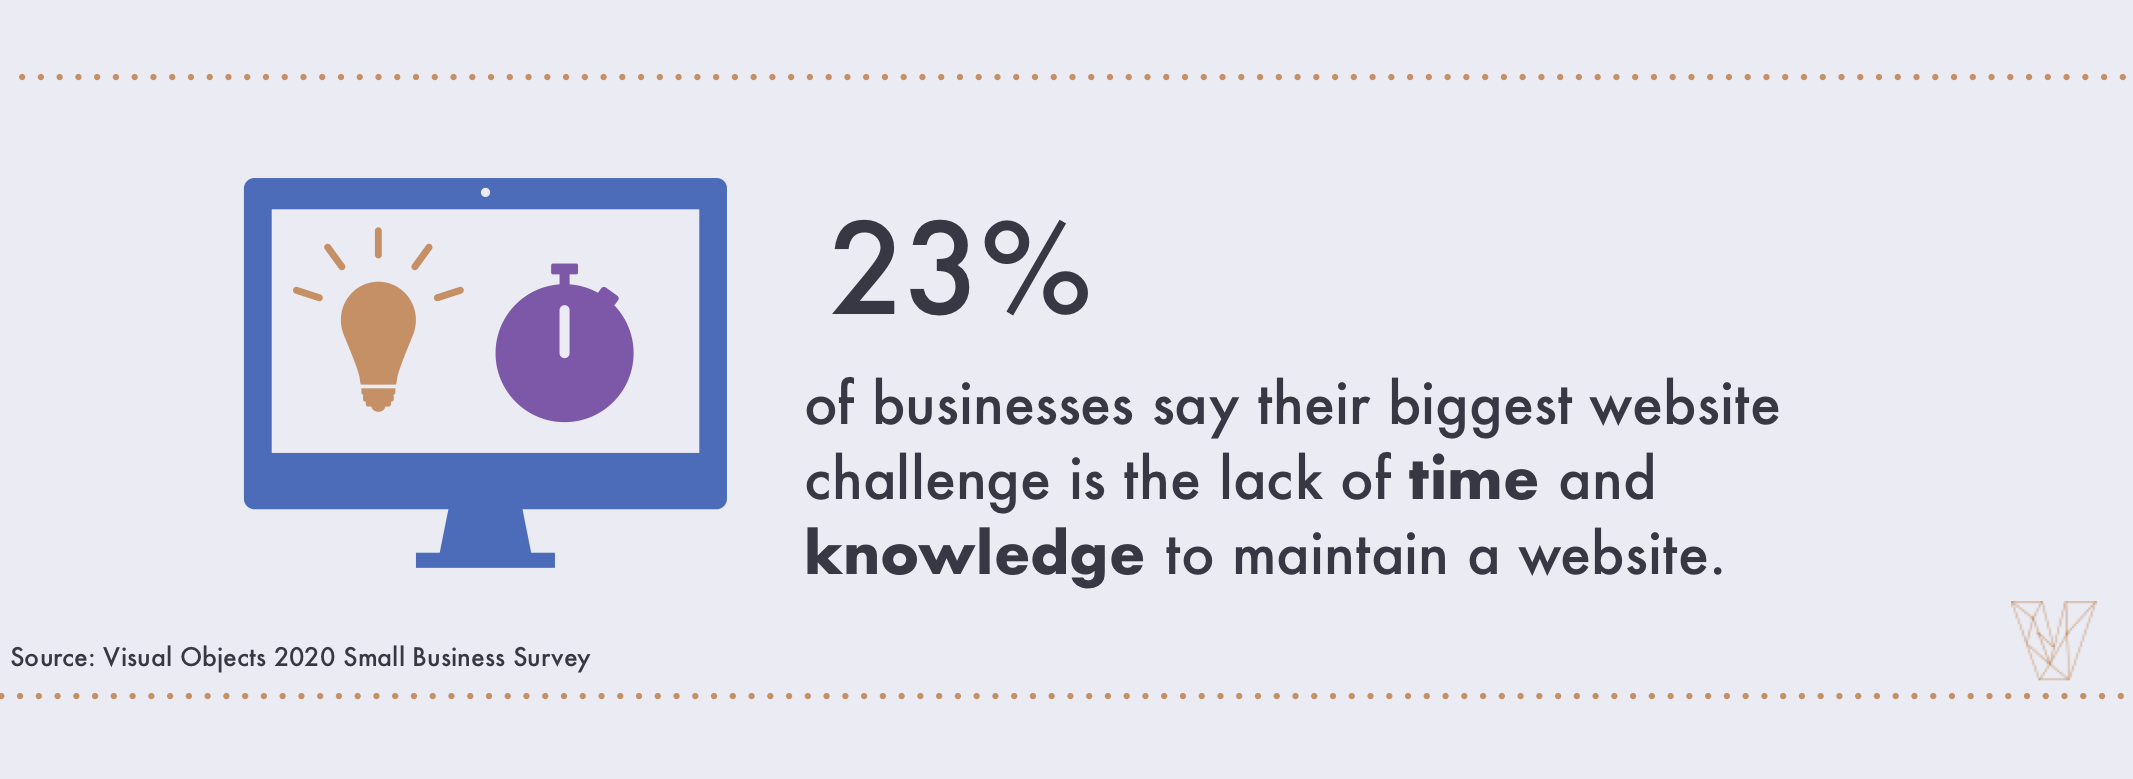 23% of businesses say the biggest challenge they faced was the lack of knowledge/time to maintain a website